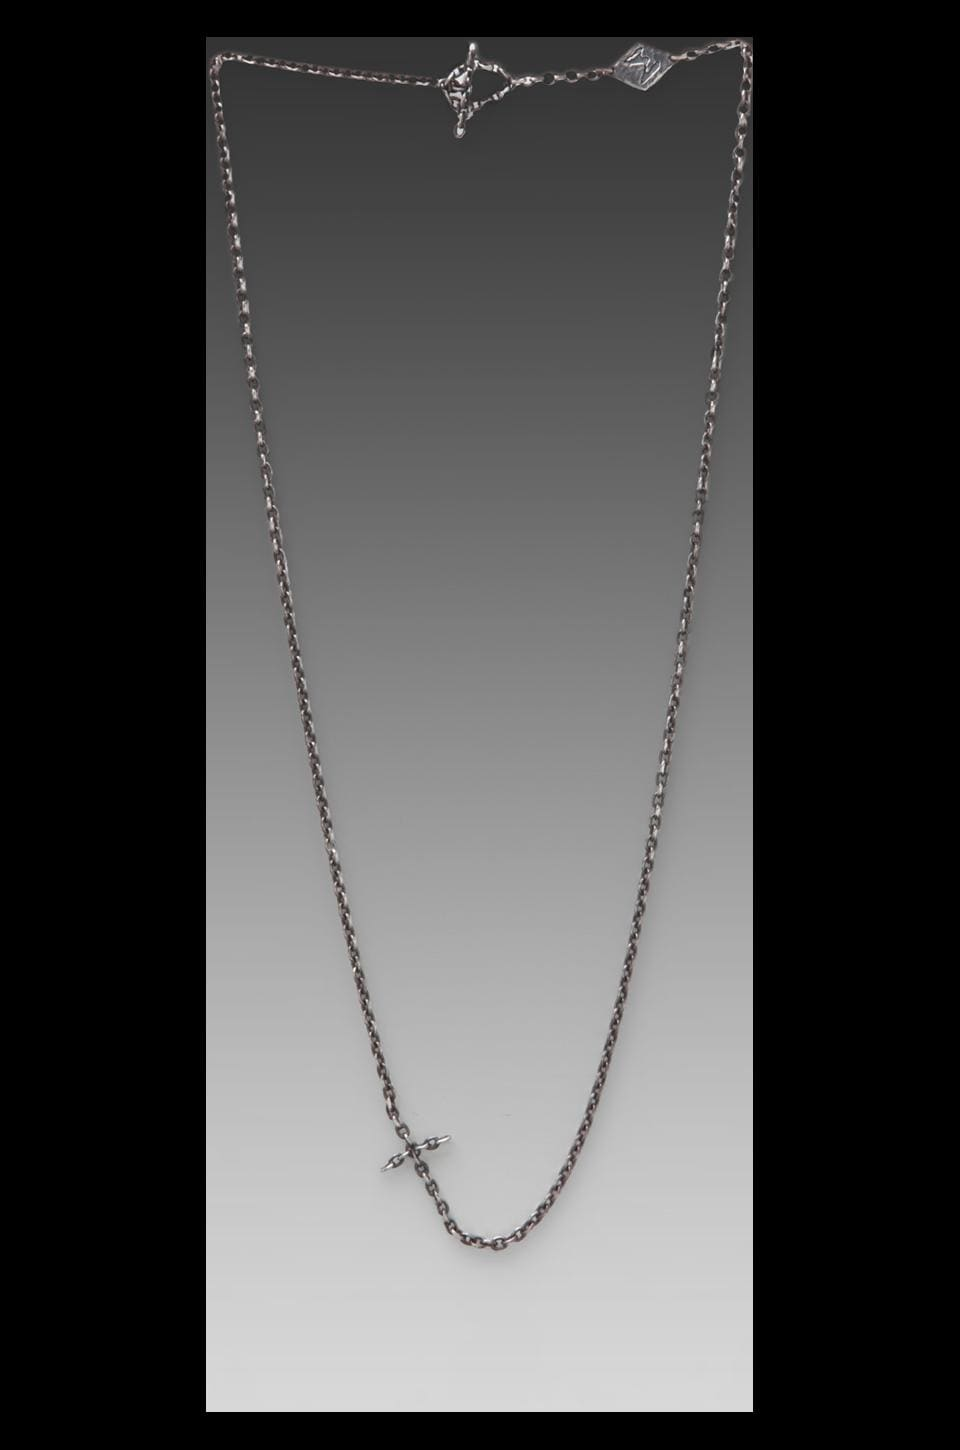 M.Cohen Chain Linked Cross Necklace in Silver